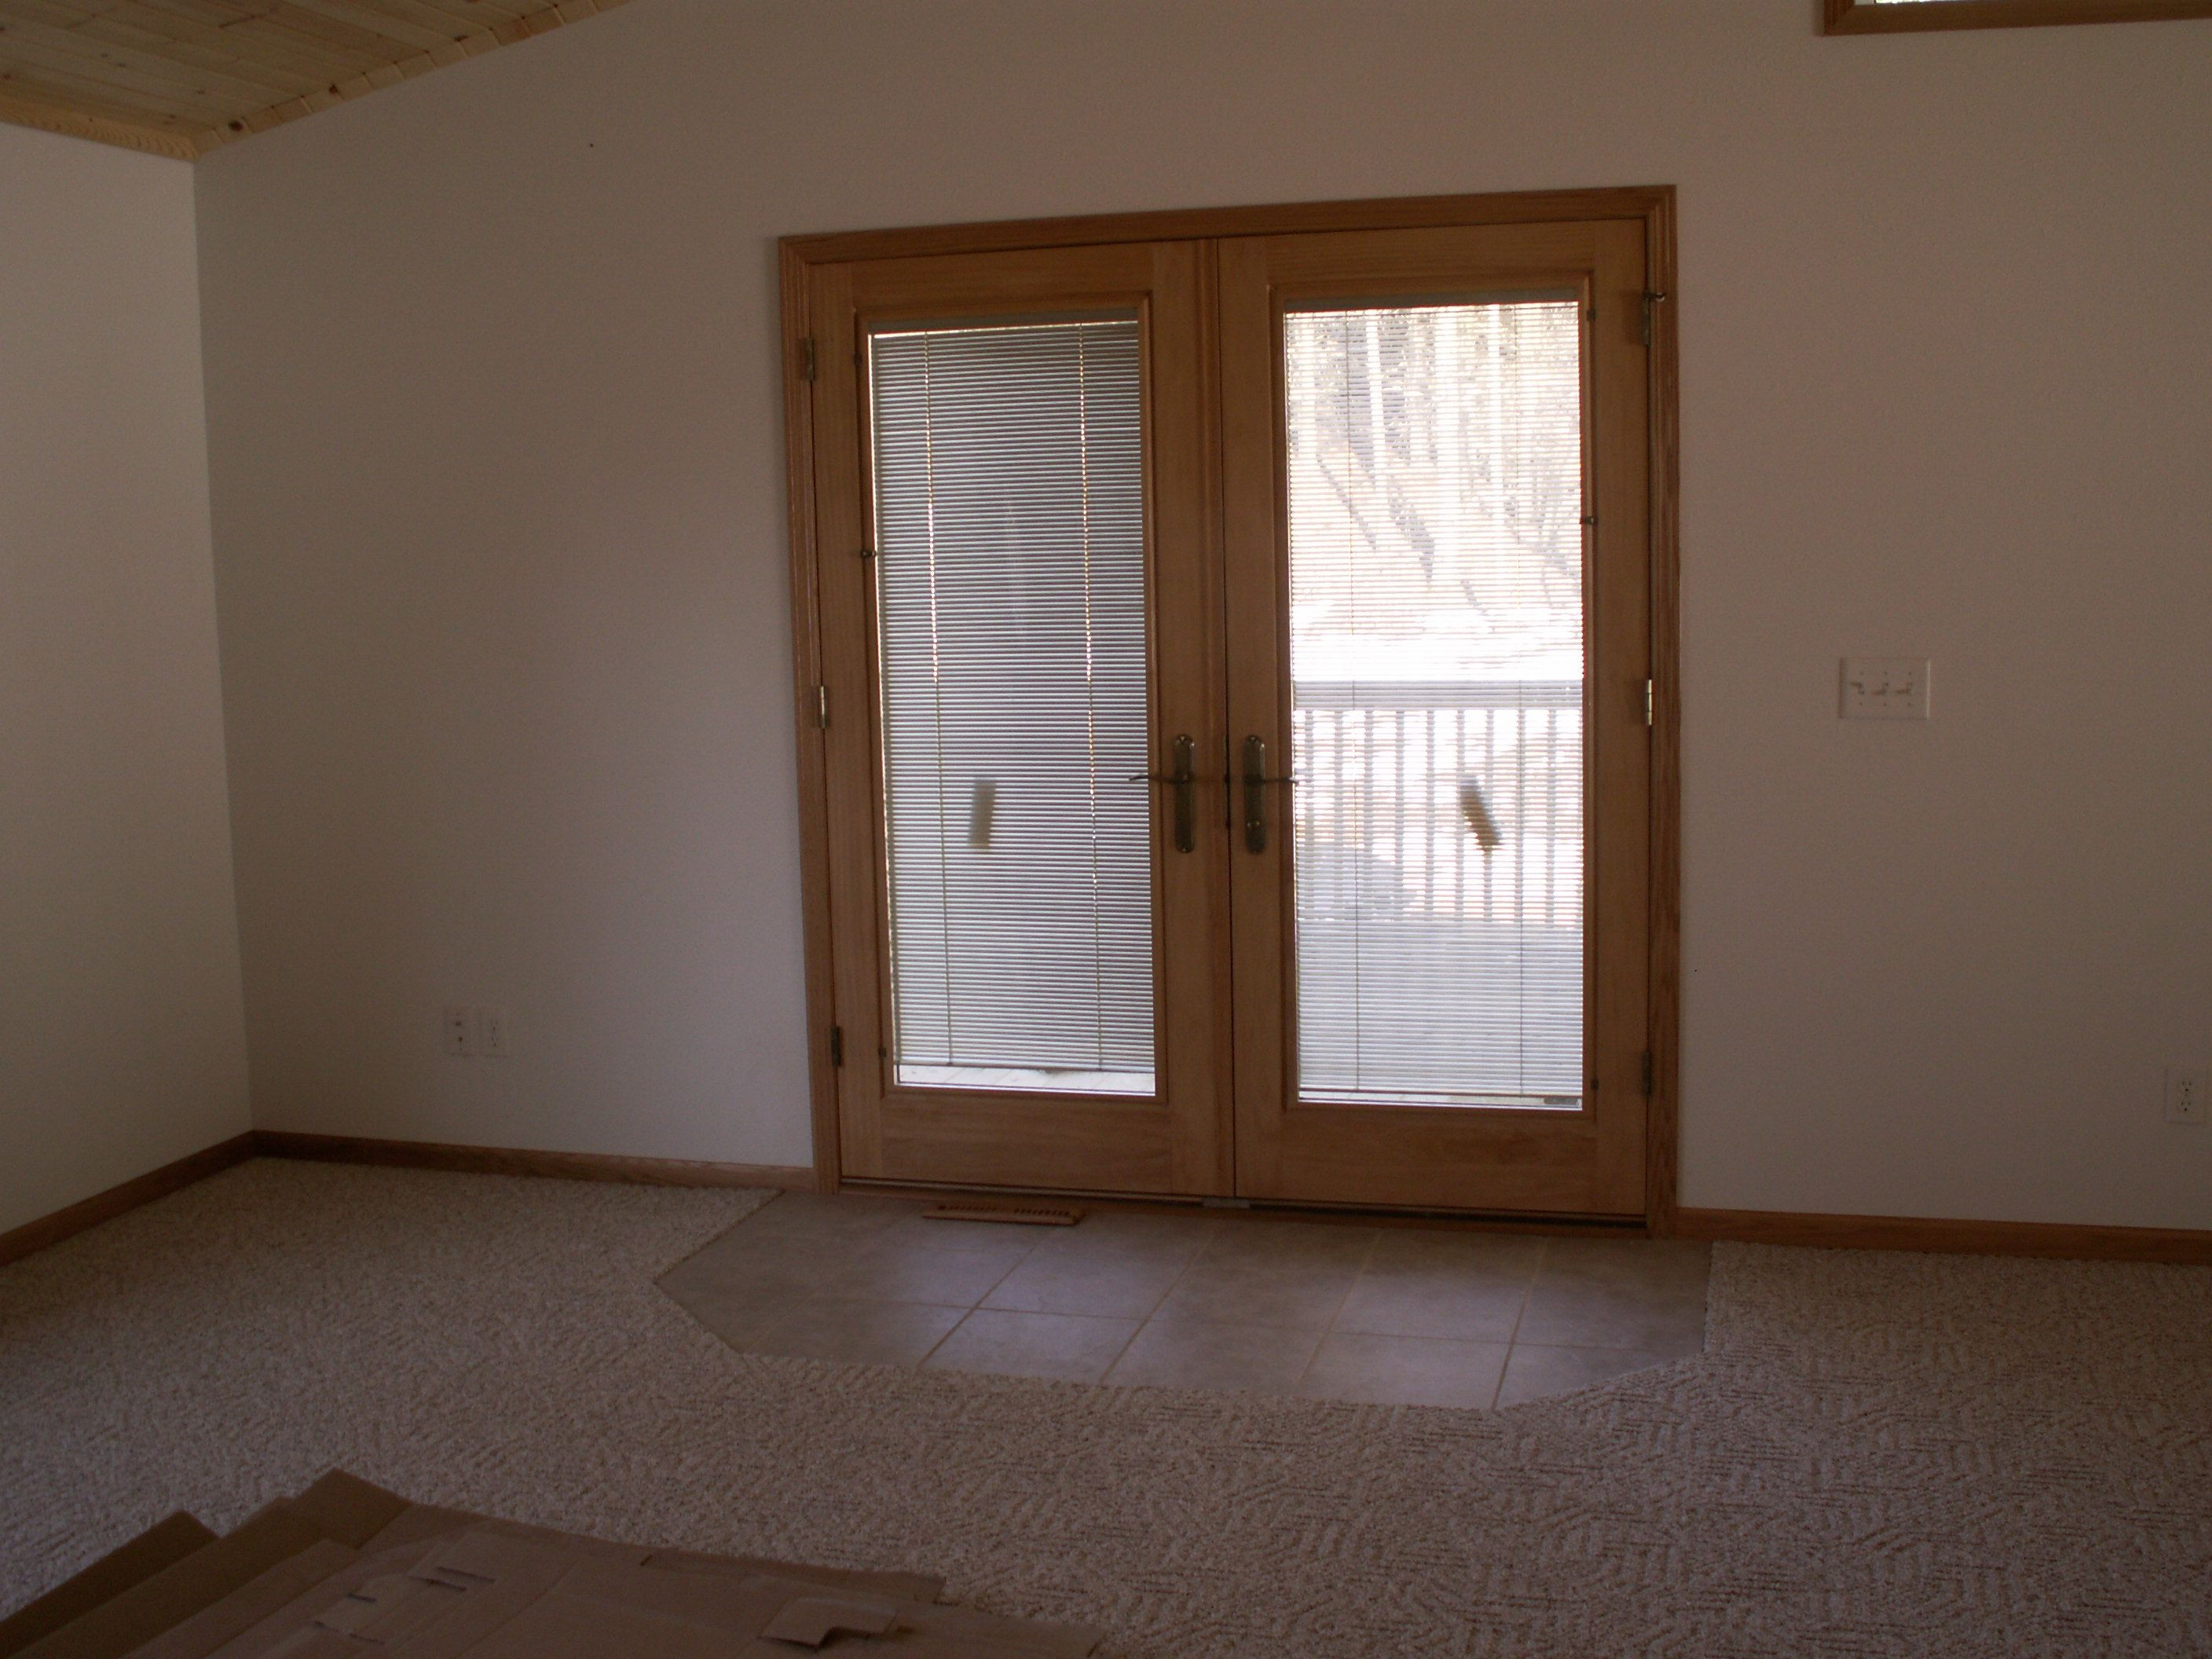 Pella Vinyl Sliding Patio Door With Blinds